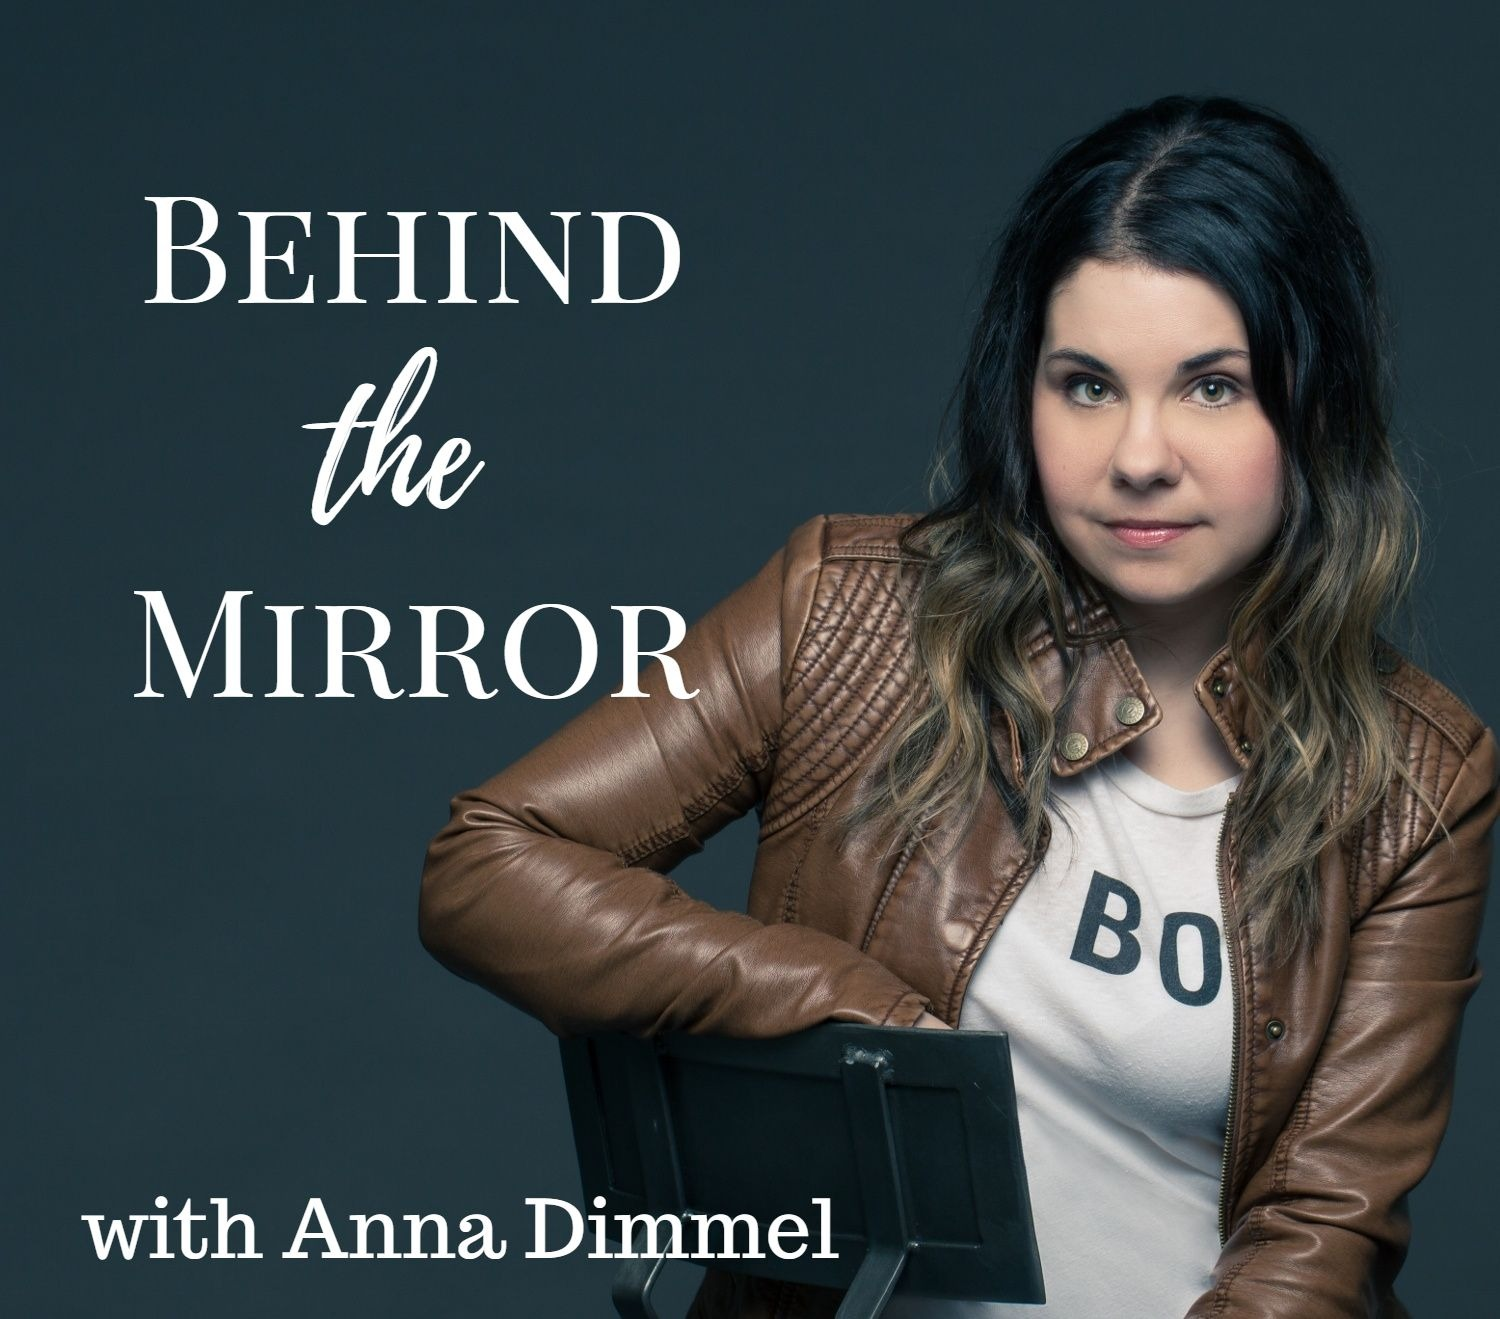 Behind the Mirror - Behind the Mirror is a conversation hosted by author, blogger and former pastor, Anna Dimmel. You are invited into unfiltered discussions about life, relationships, fears, doubts and connection with the Divine through it all. You will hear personal stories from her journey as a self-described misfit pastor, alternative thoughts on theology and inspiring interviews with other out-of-the-box thinkers, as you venture outside the lines of the Christian norm.